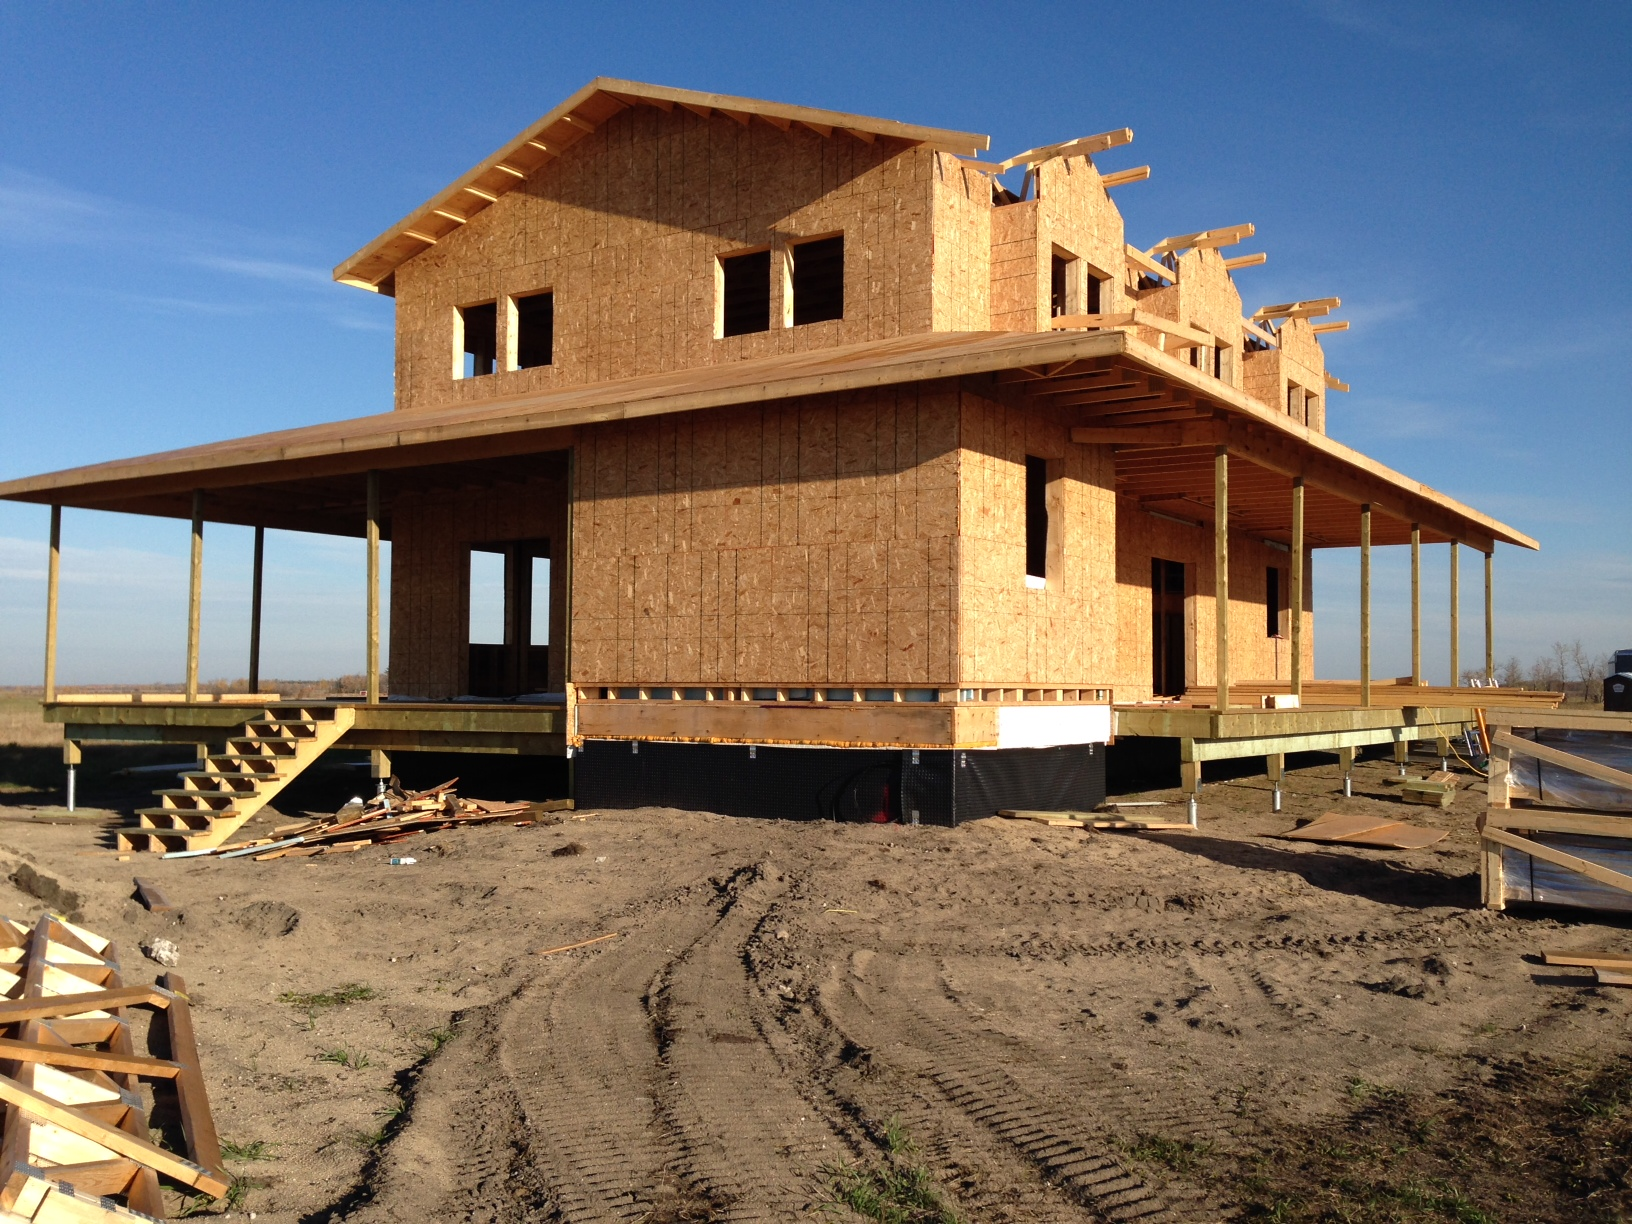 Building A House : Building a new home in garson mb on postech winnipeg